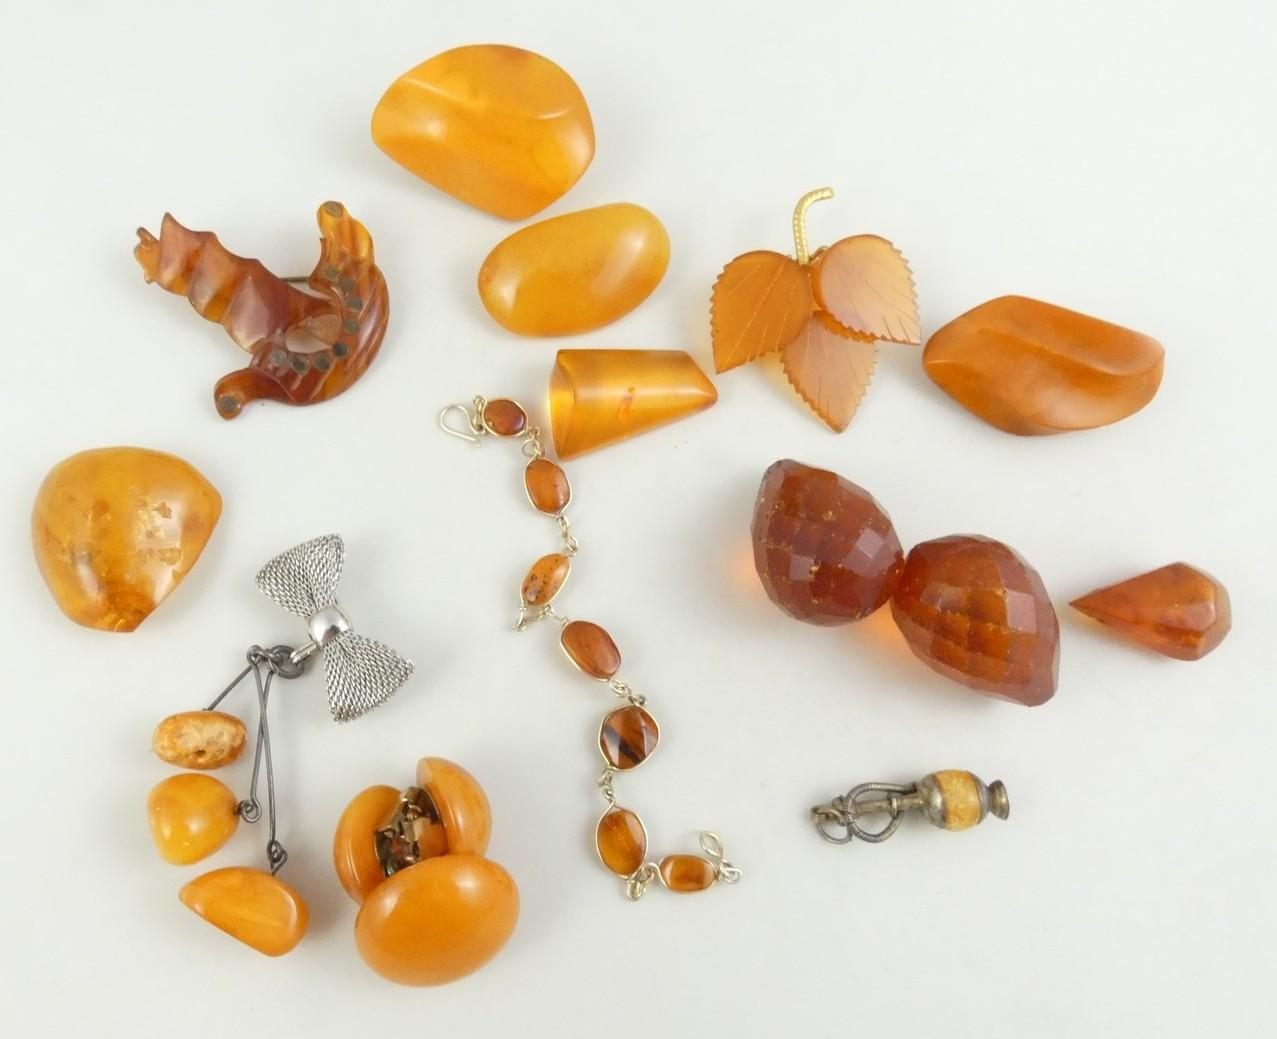 TWO FIGURINES